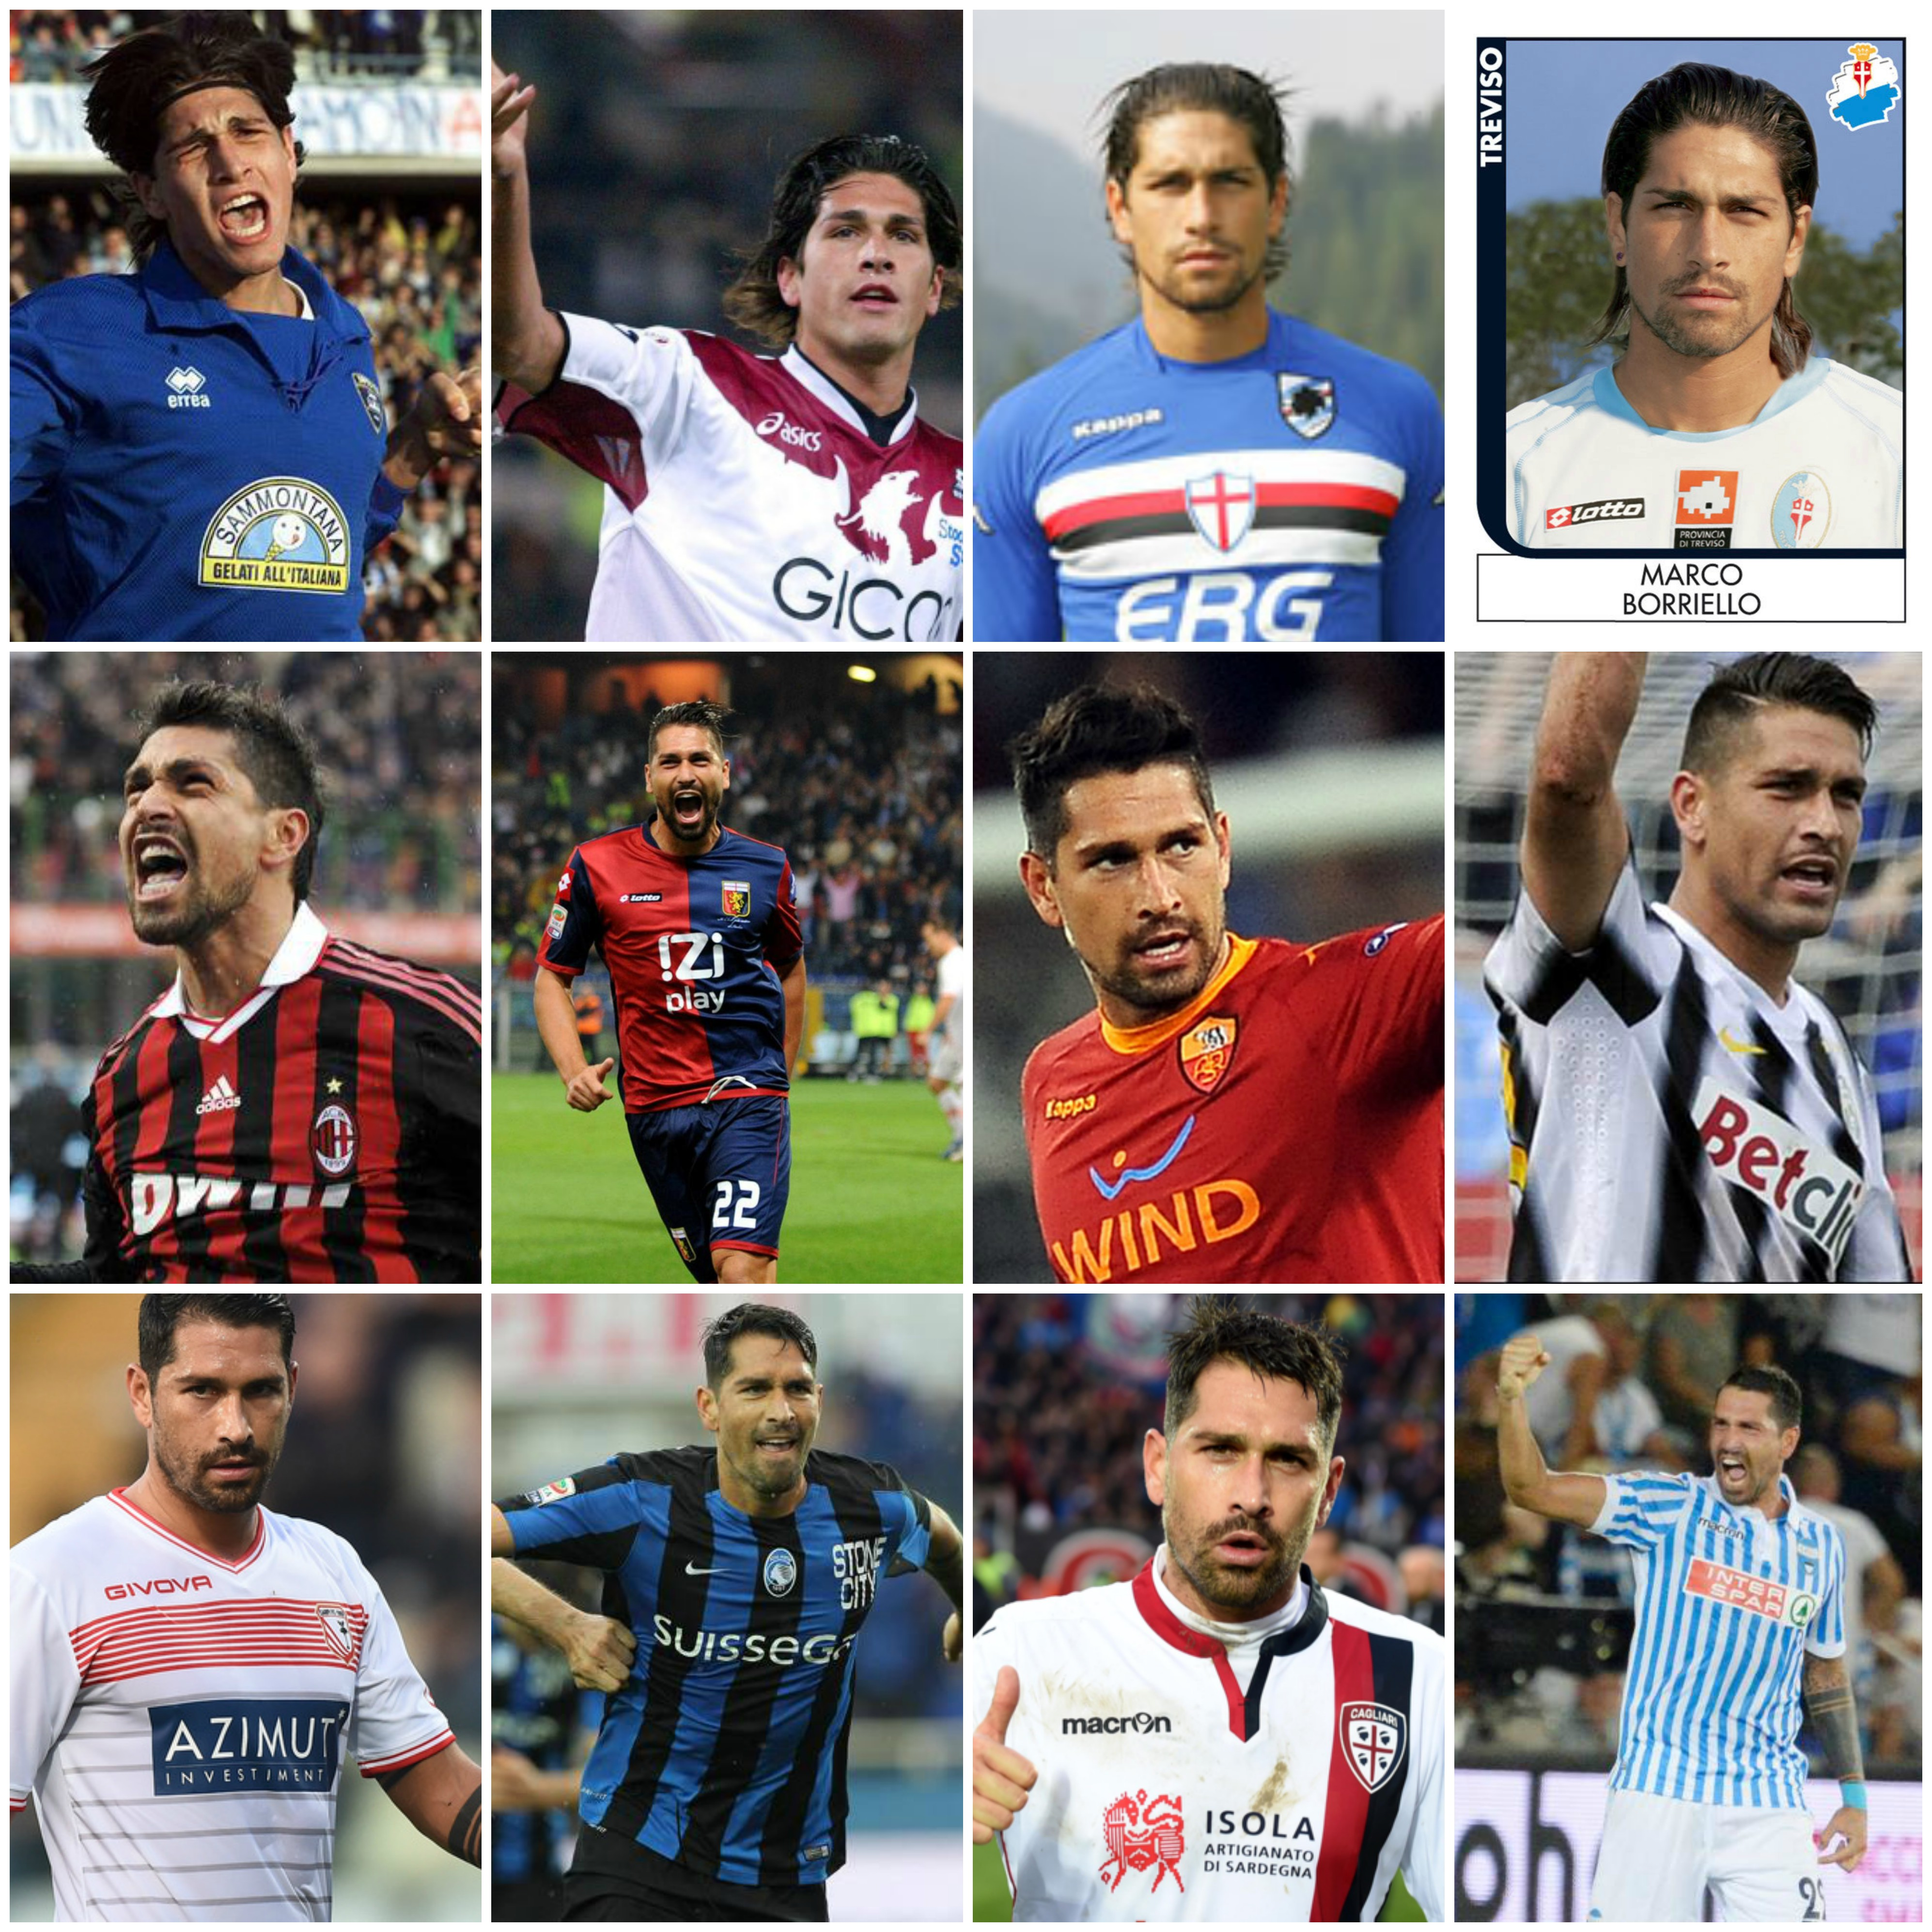 Borriello recordman scored with 12 different teams in Serie A